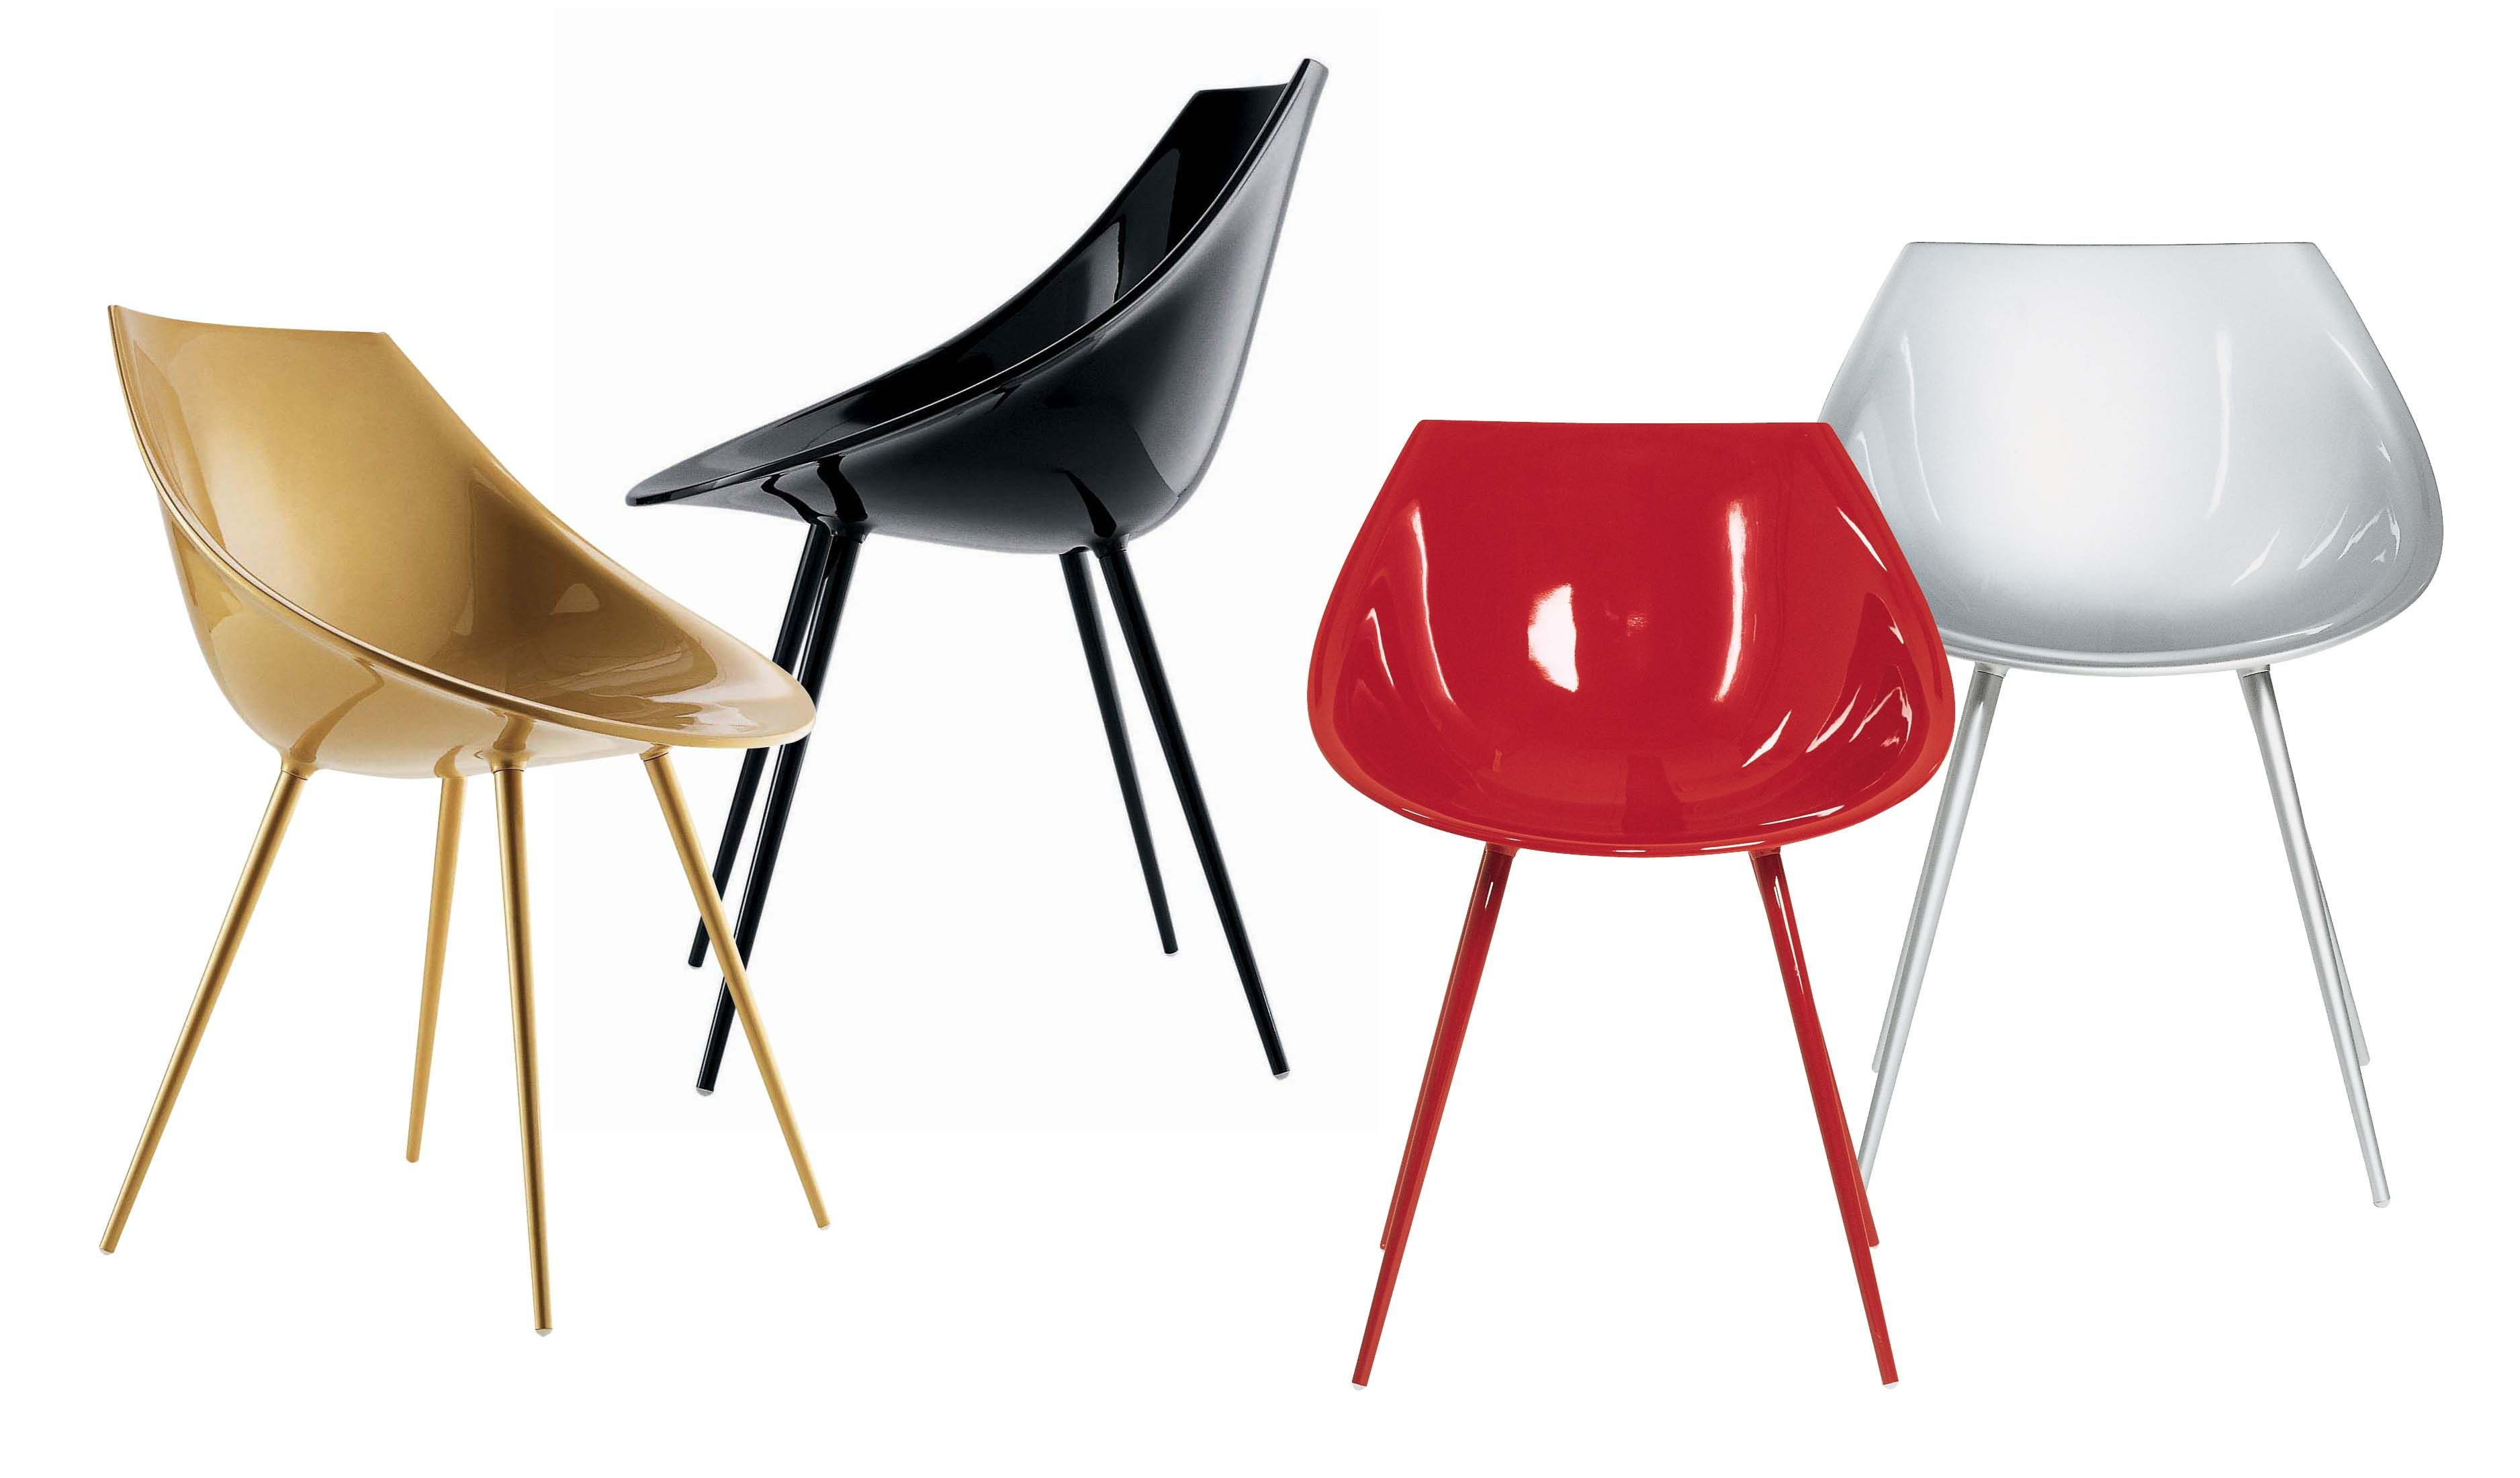 Lag Dining Chair By Philippe Starck For Driade Sohomod Blog